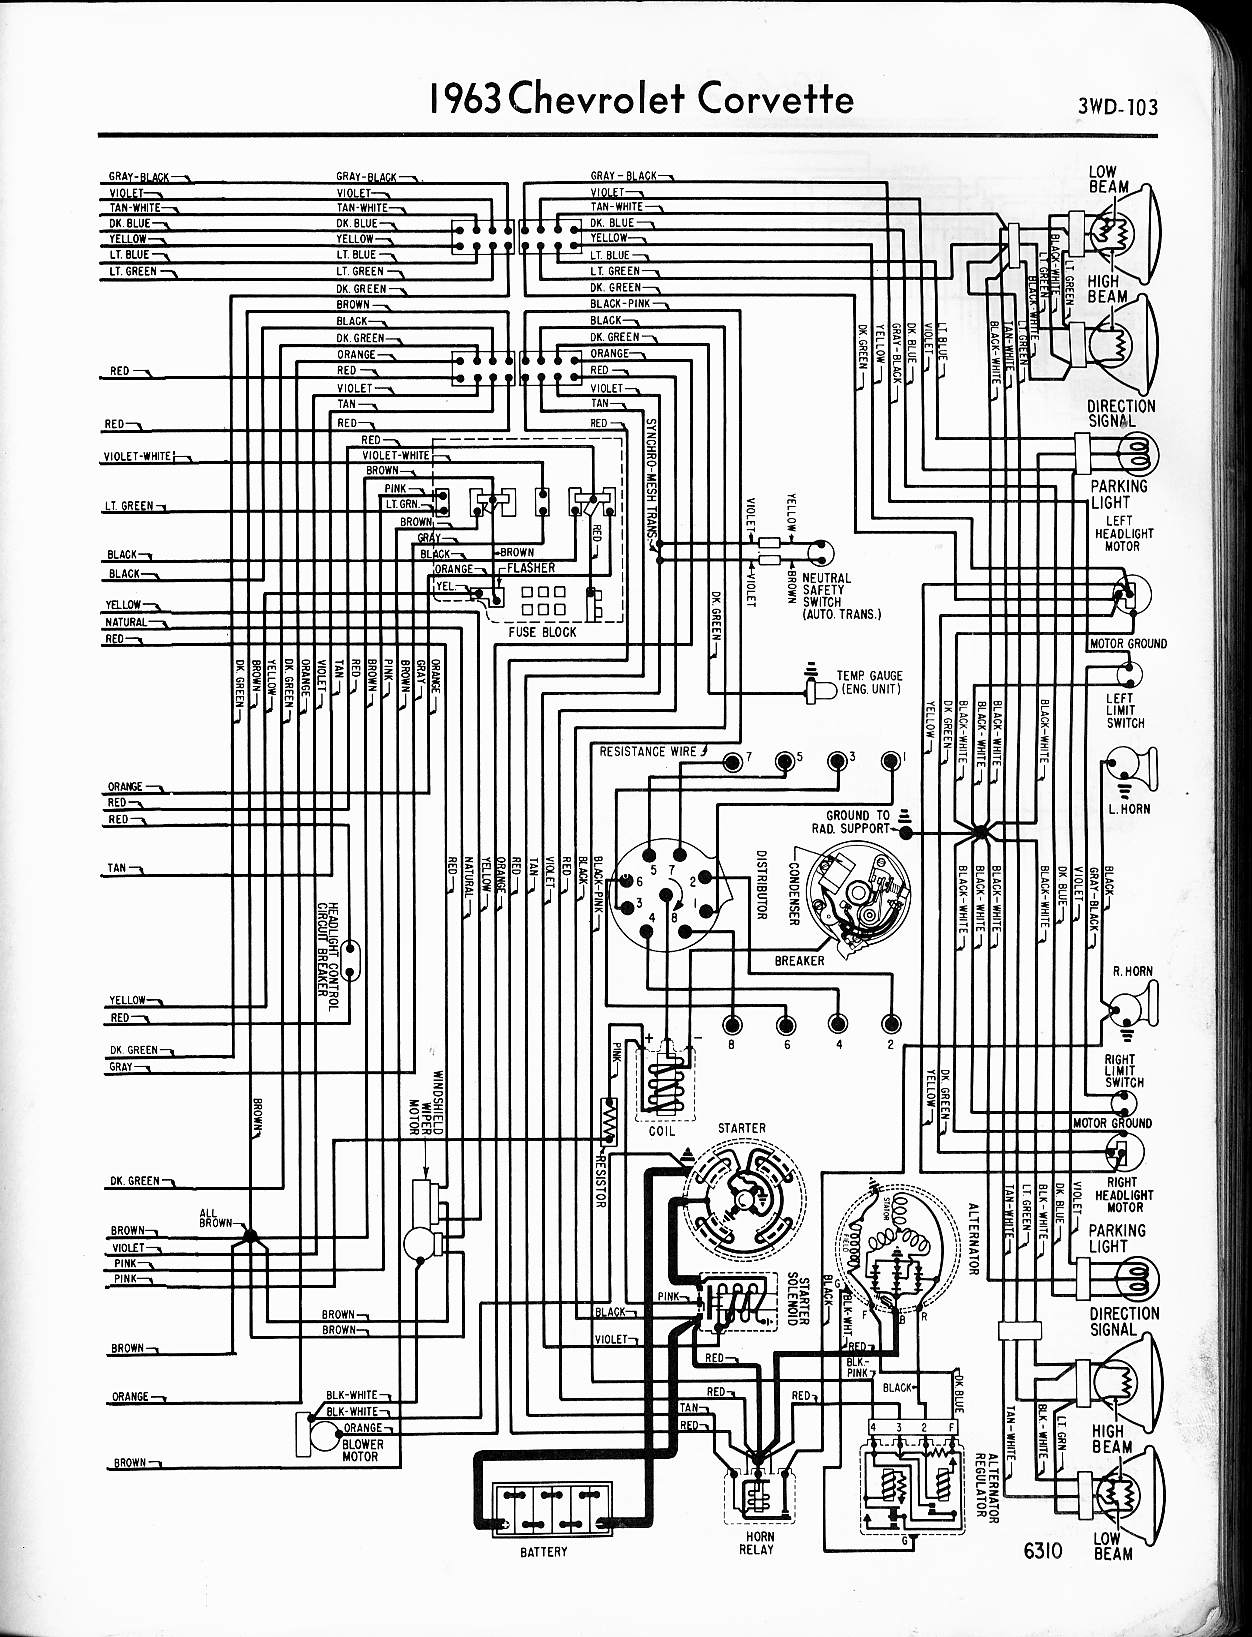 hight resolution of 1963 gmc wiring diagram wiring diagram will be a thing u2022 rh exploreandmore co uk 1973